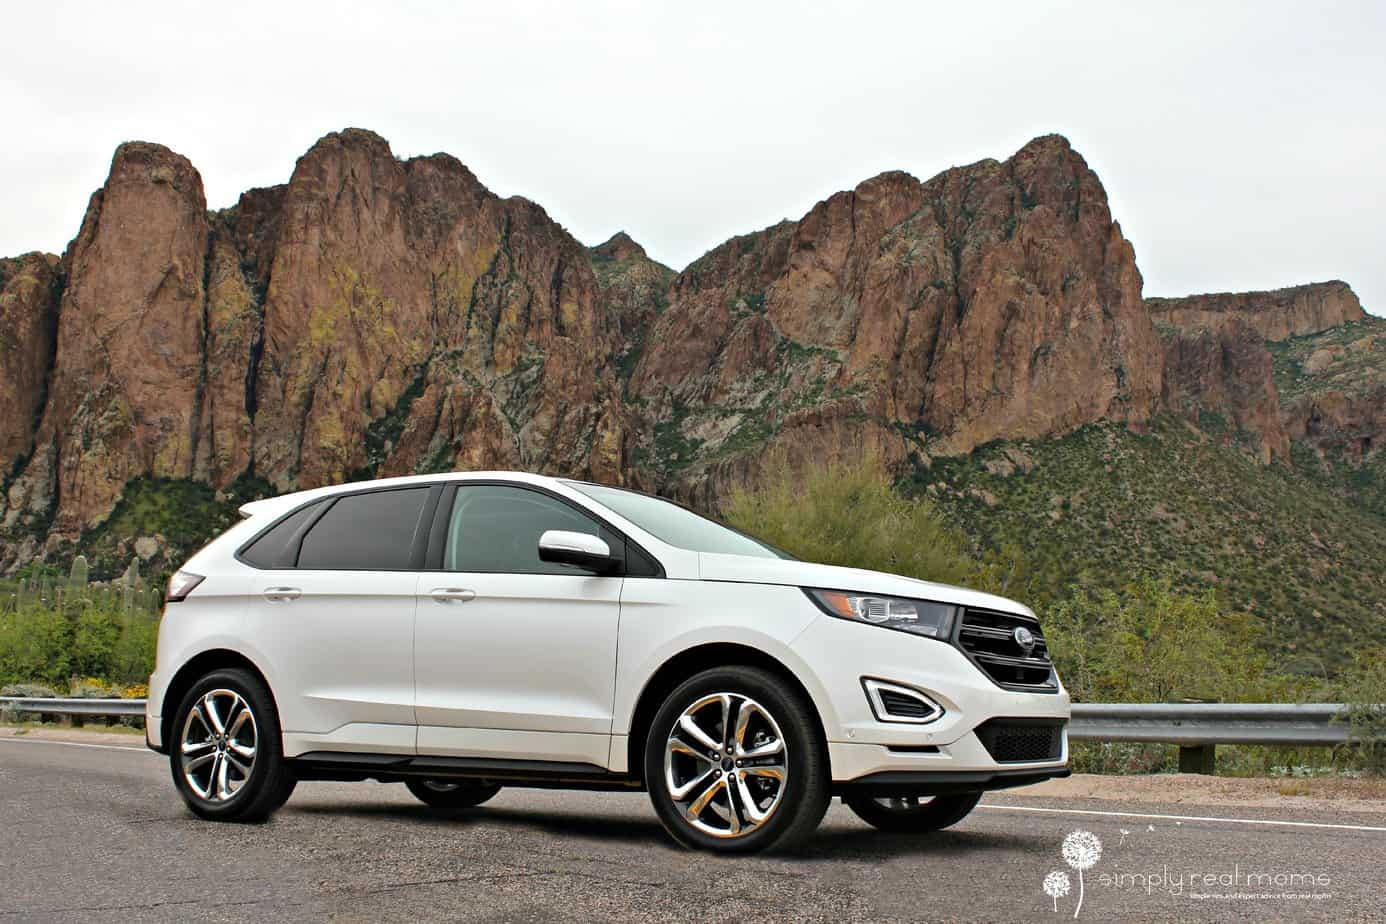 2015 Ford Edge: Bigger, Bolder, Better 3